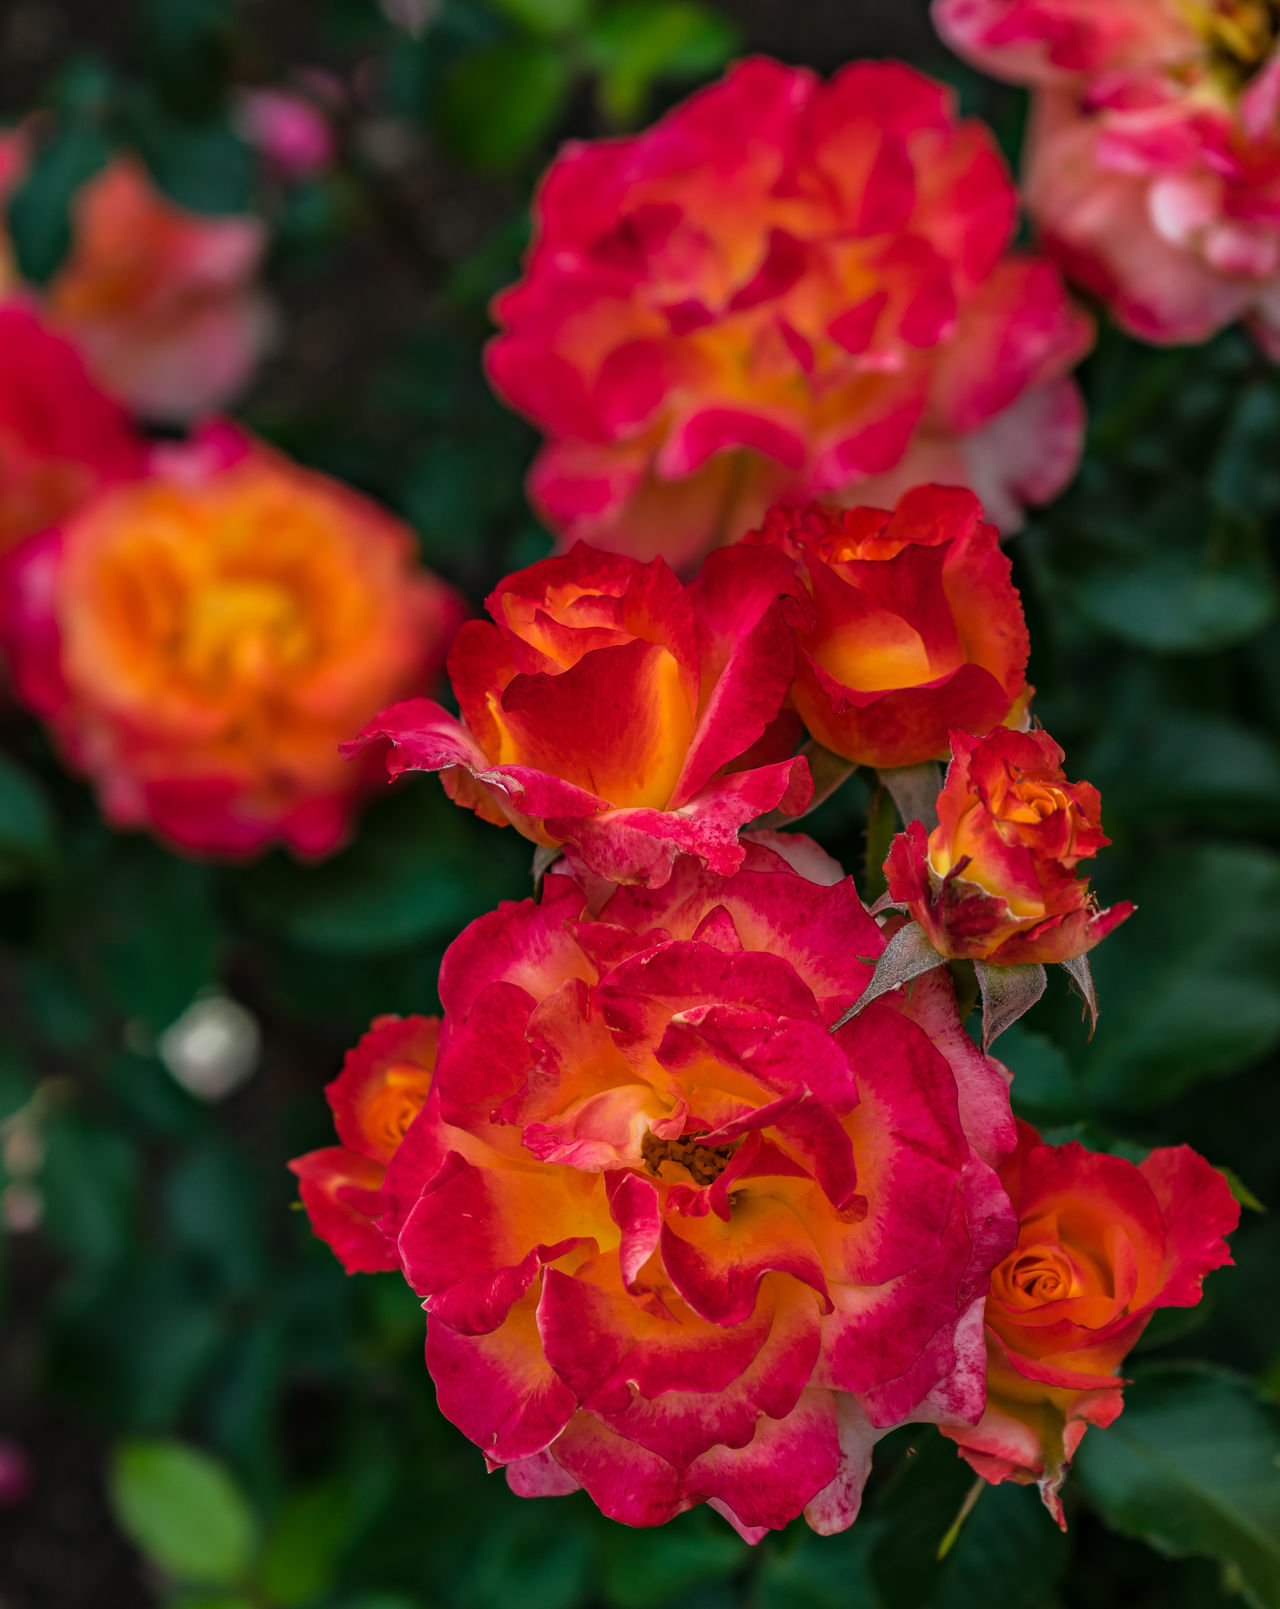 Fiery red roses with yellow highlights Beauty In Nature Blooming Bunch Of Flowers Close-up Day Fiery Red Roses With Yellow Flower Flower Head Fragility Freshness Growth Nature No People Outdoors Petal Plant Sunset